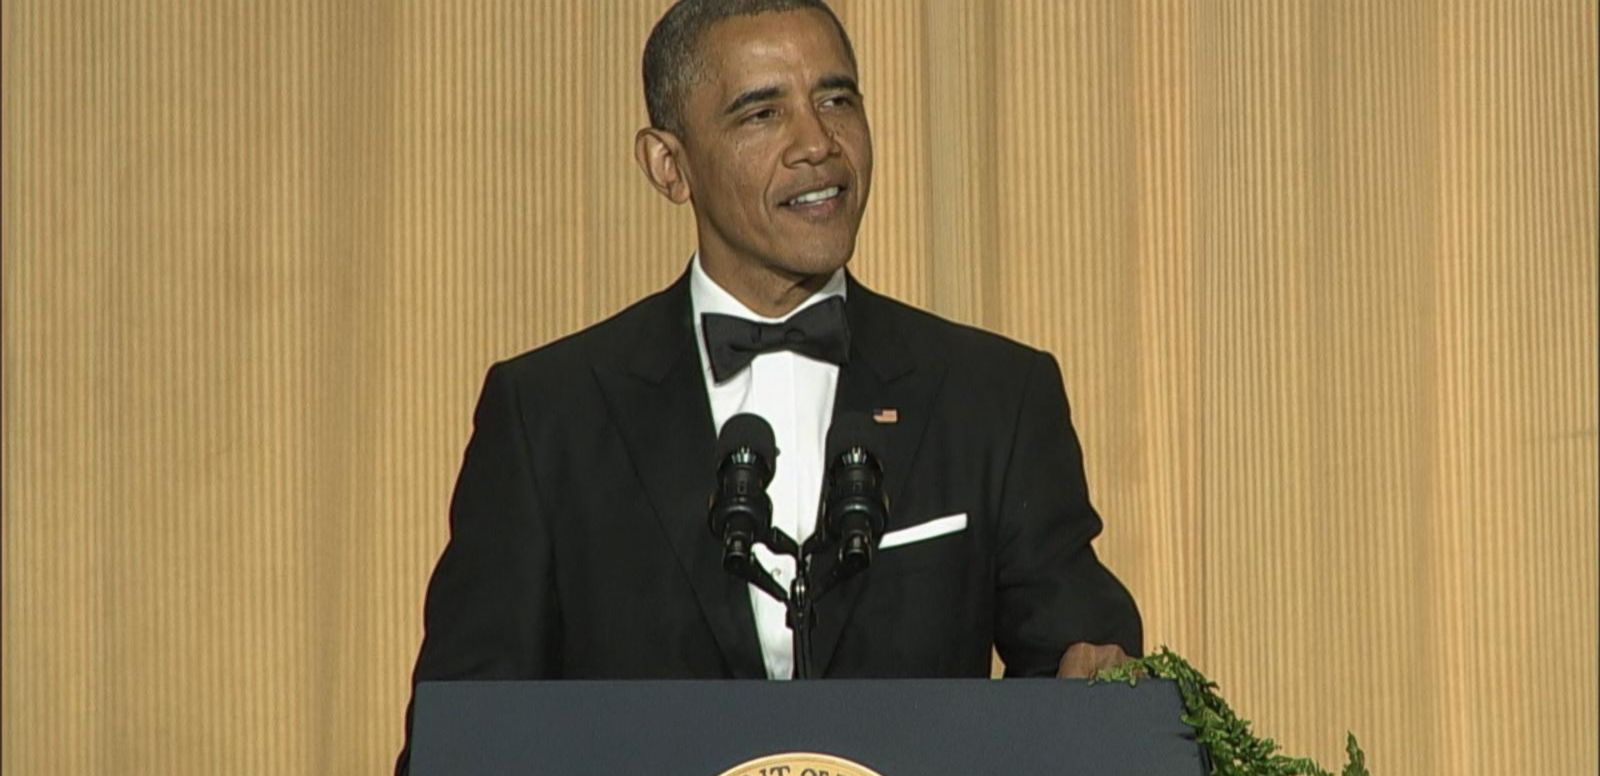 VIDEO: Obama's Final White House Correspondents' Dinner